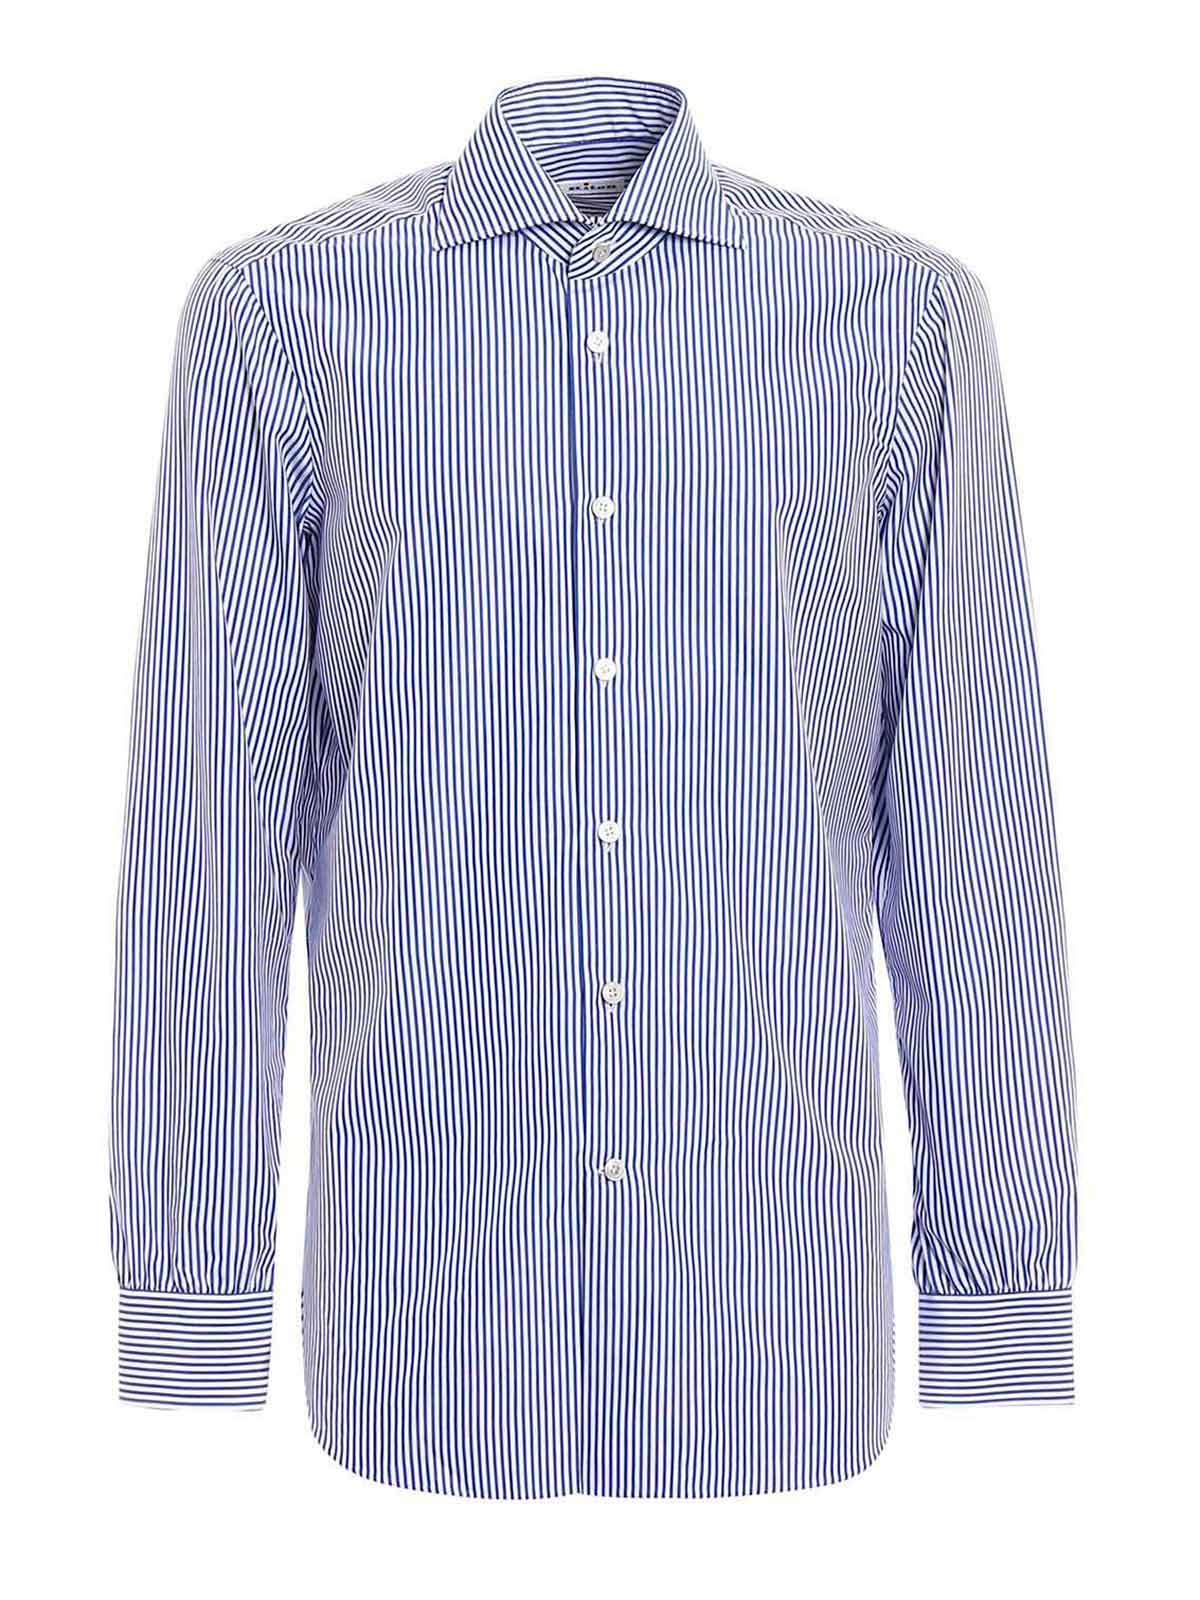 Picture of KITON | Men's Striped Classic Shirt